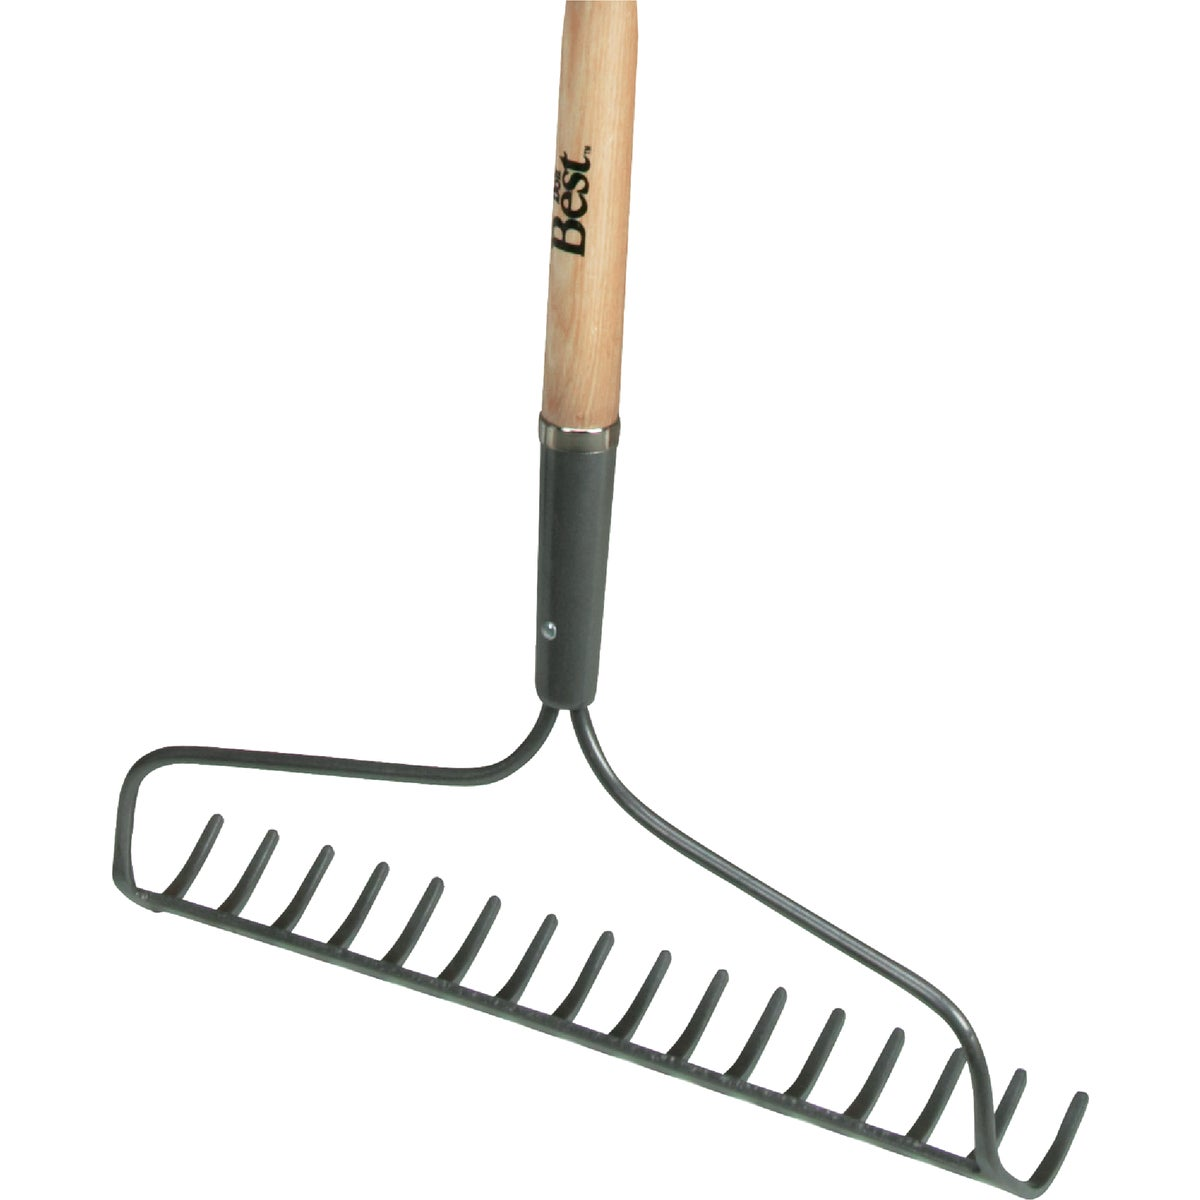 GARDEN RAKE - YN-RO12-16-2L by Do it Best